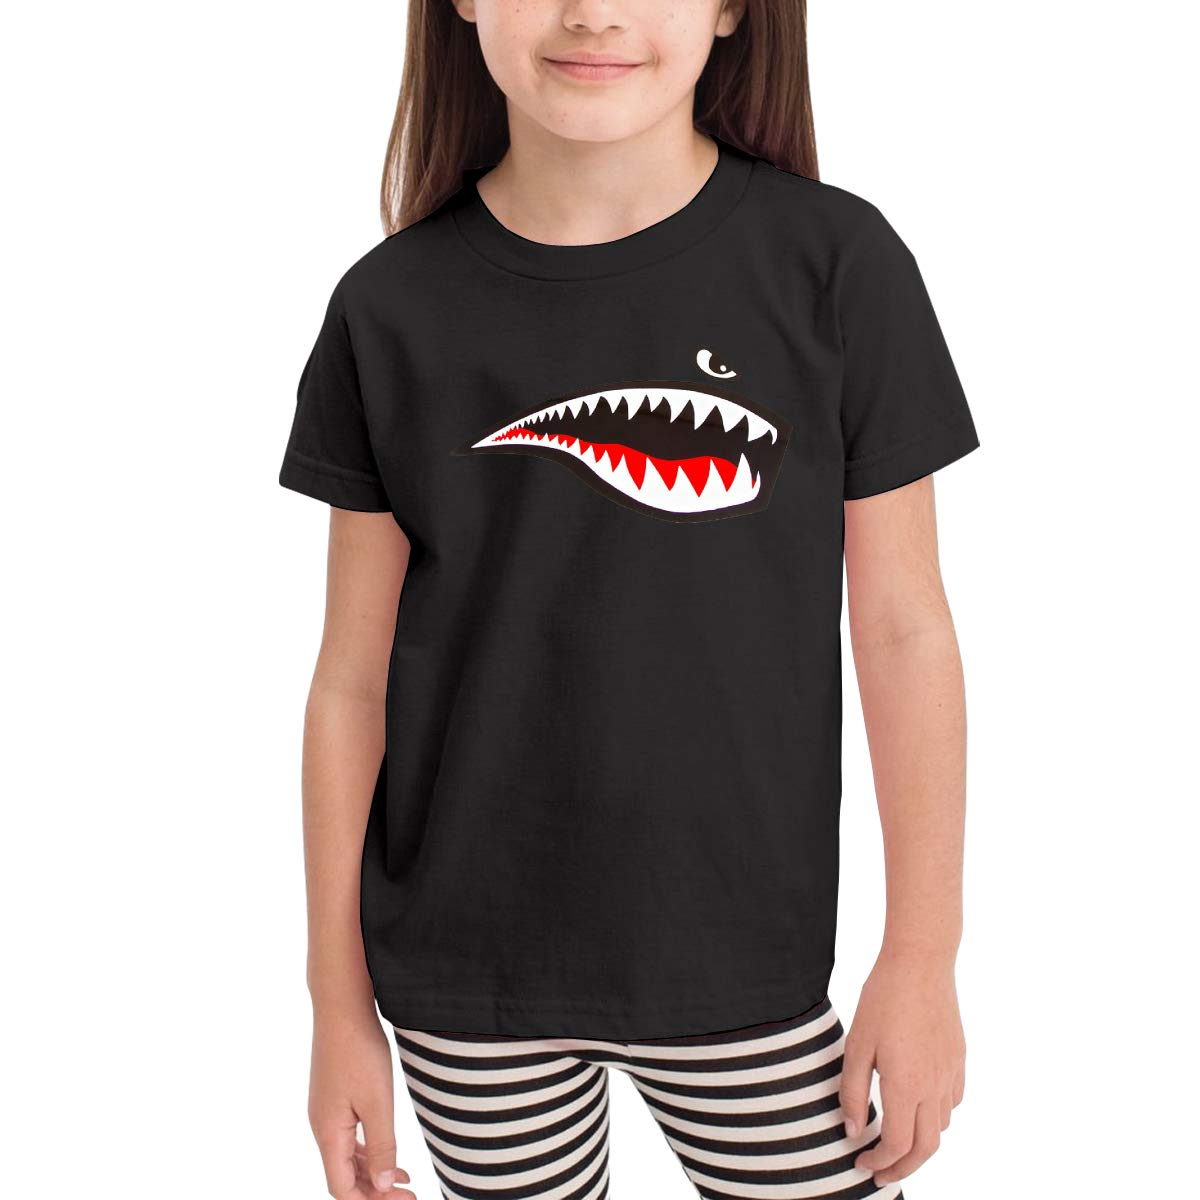 Tiger Shark 100/% Cotton Toddler Baby Boys Girls Kids Short Sleeve T Shirt Top Tee Clothes 2-6 T